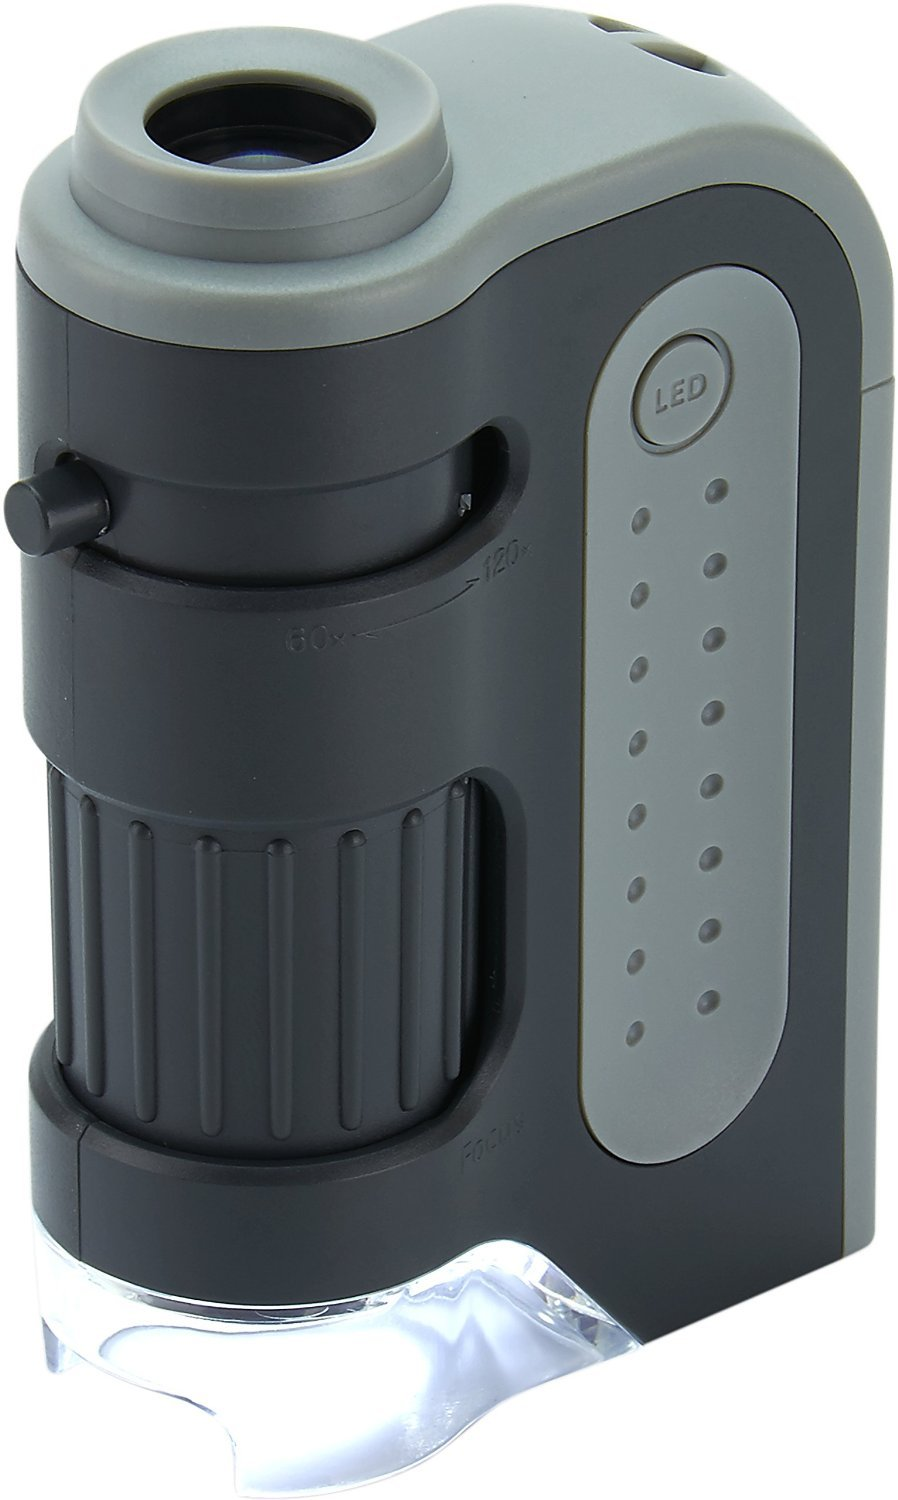 Carson MicroBrite Plus 60 -120x LED Lighted Pocket Microscope